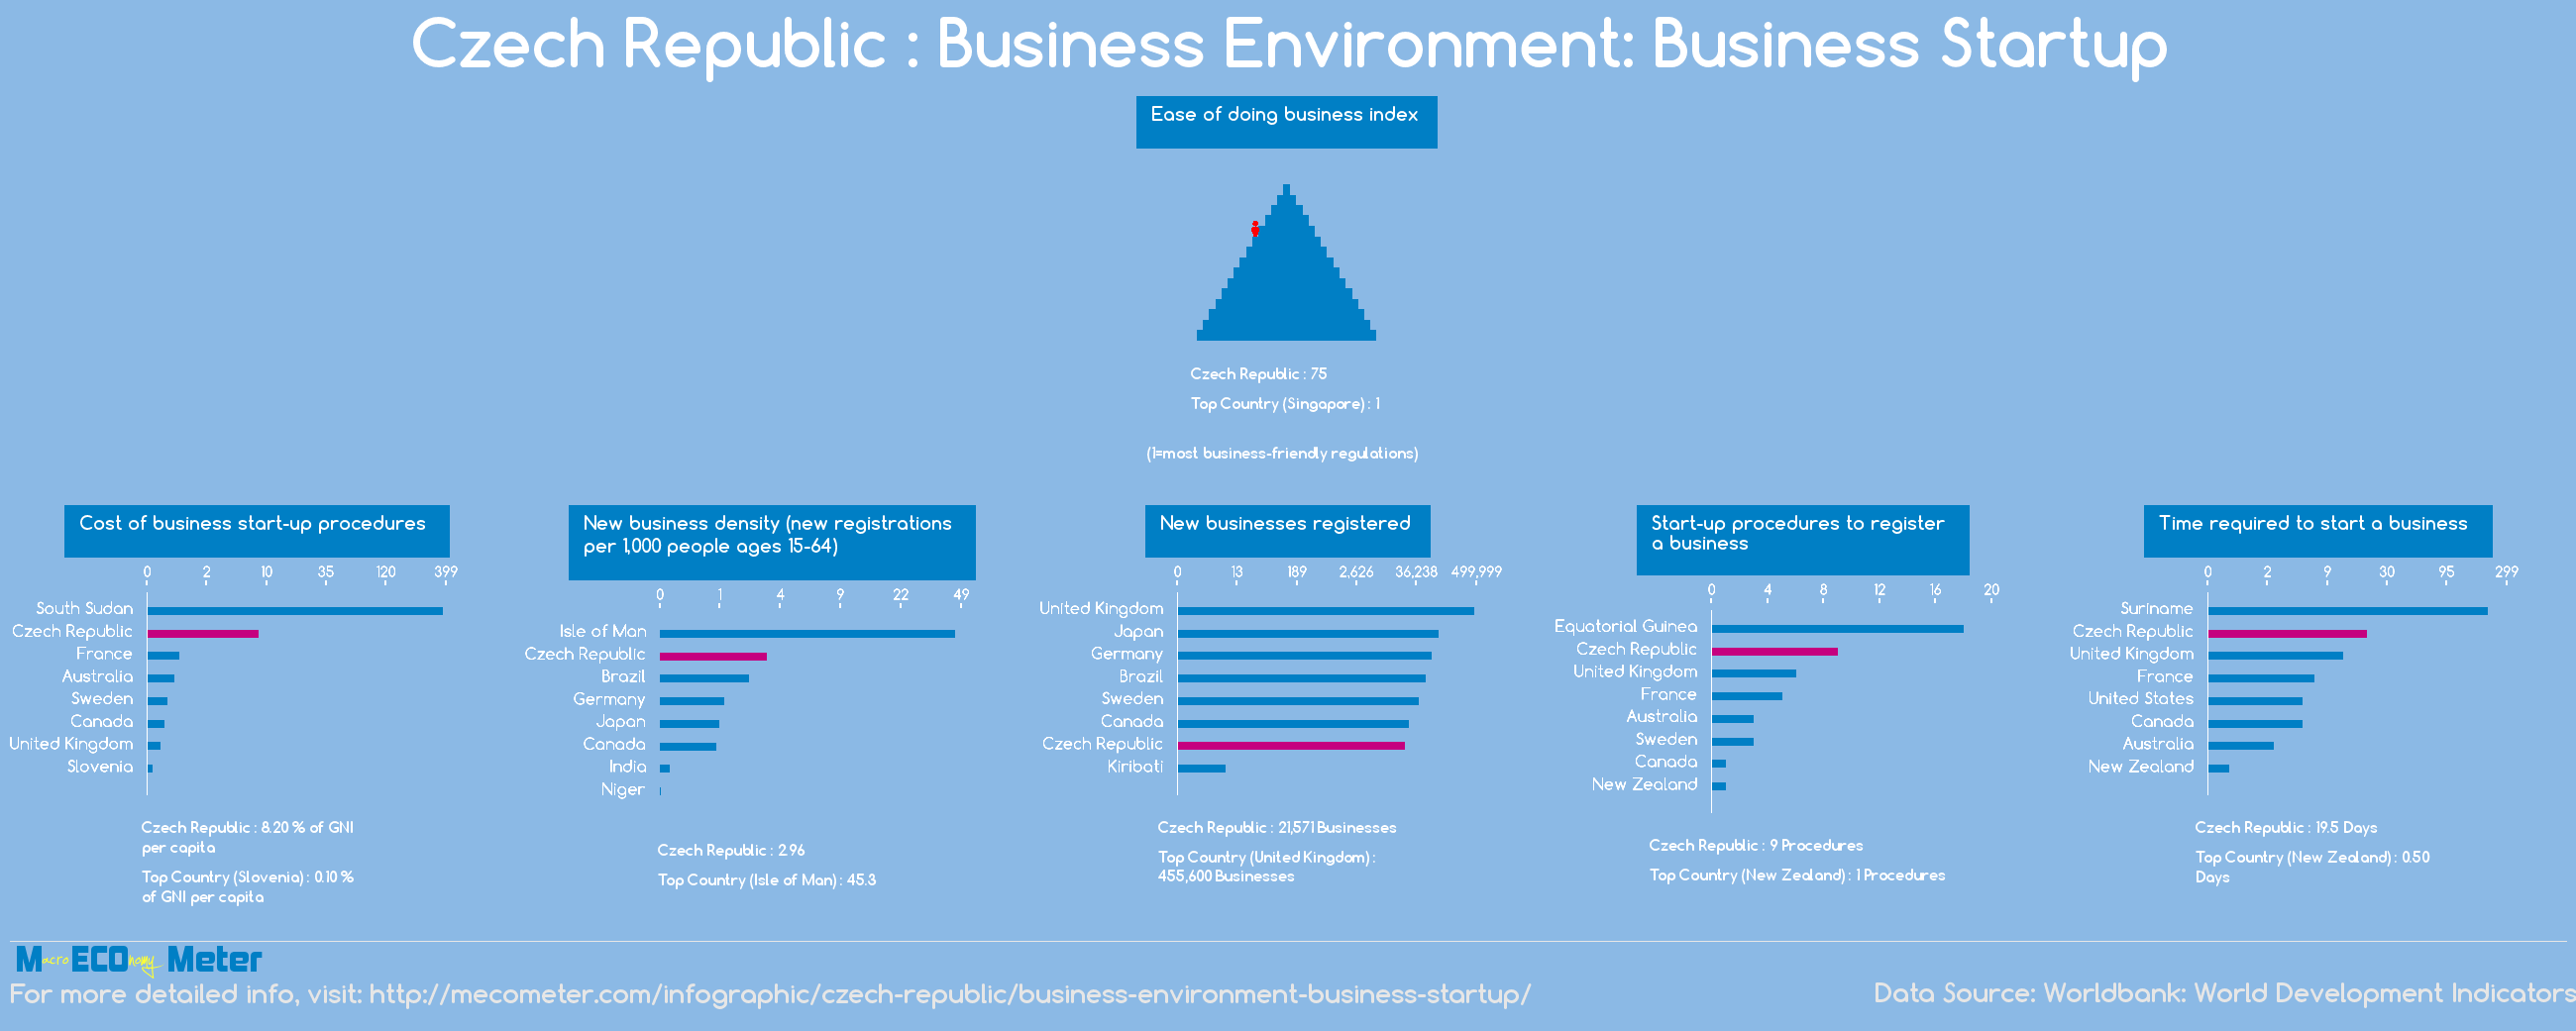 Czech Republic : Business Environment: Business Startup